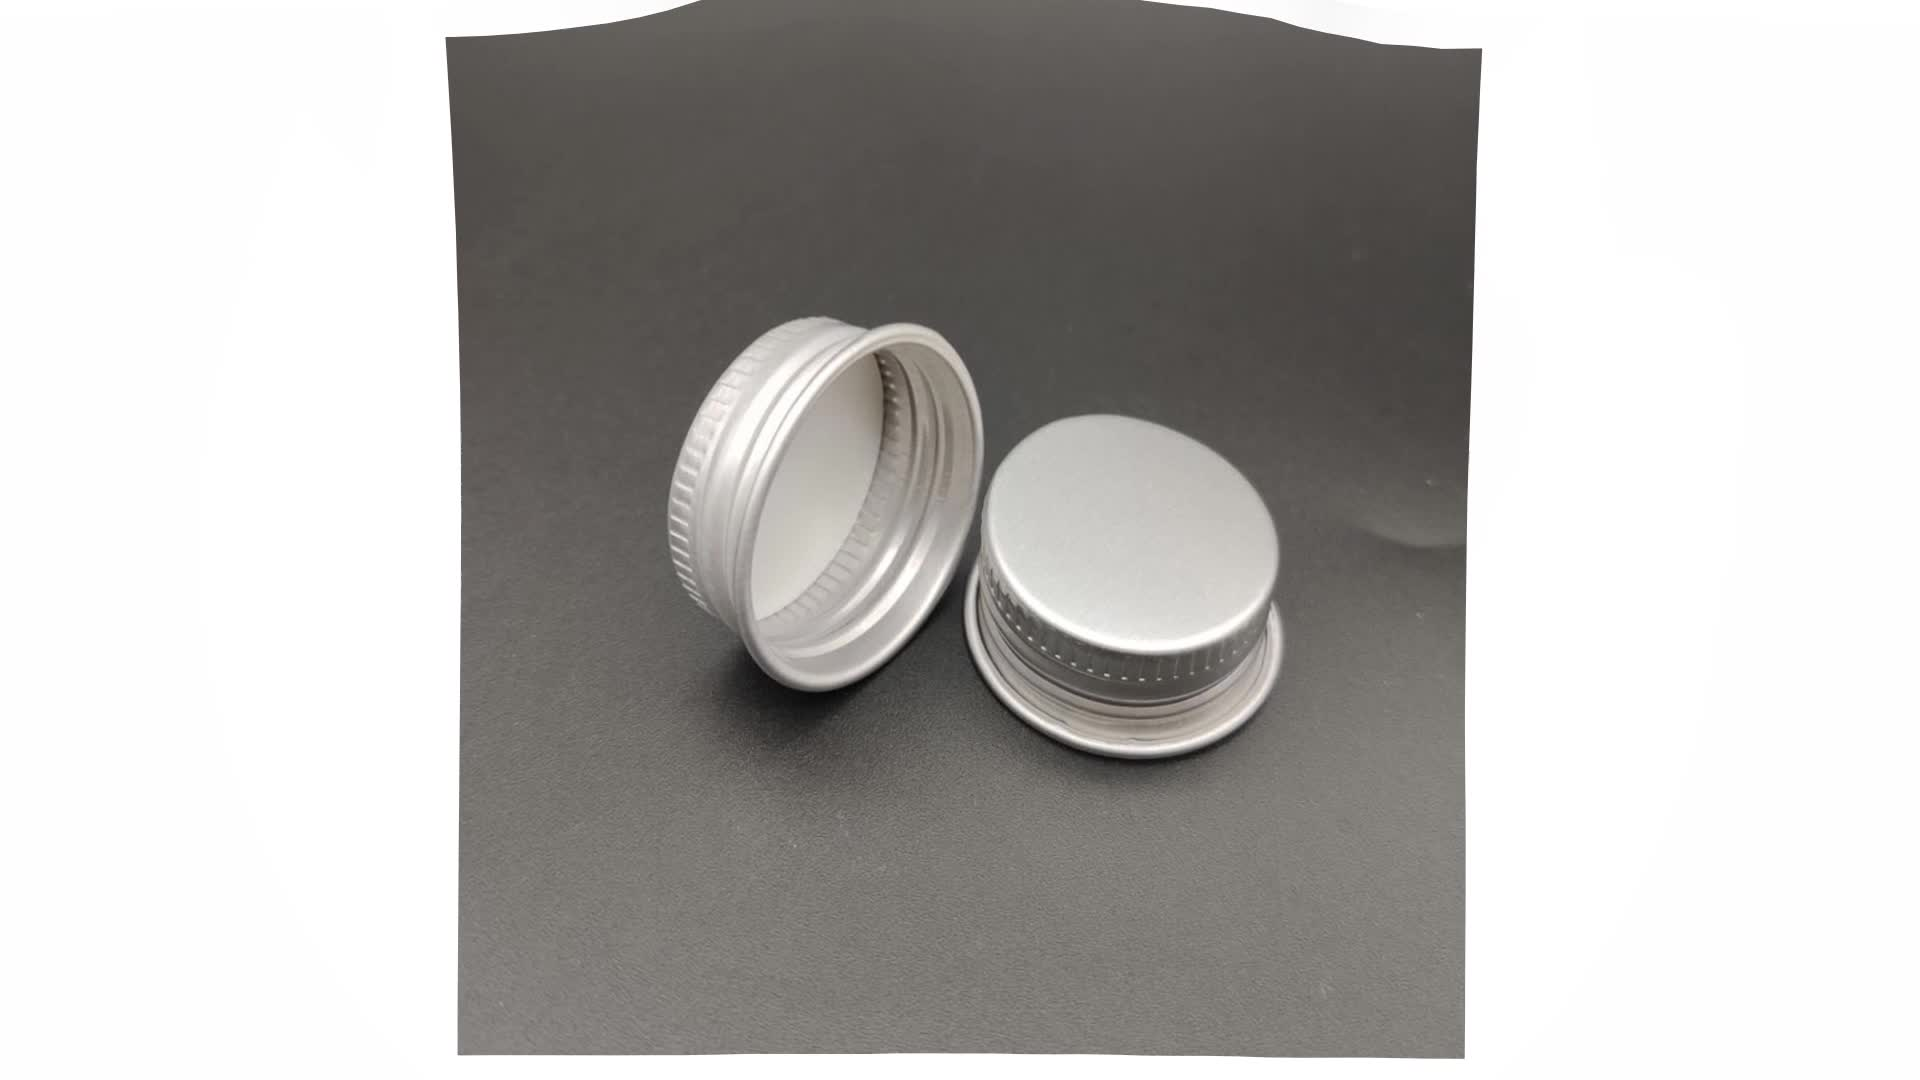 18mm Silver Metal cap closure aluminium easy open lid for bottle